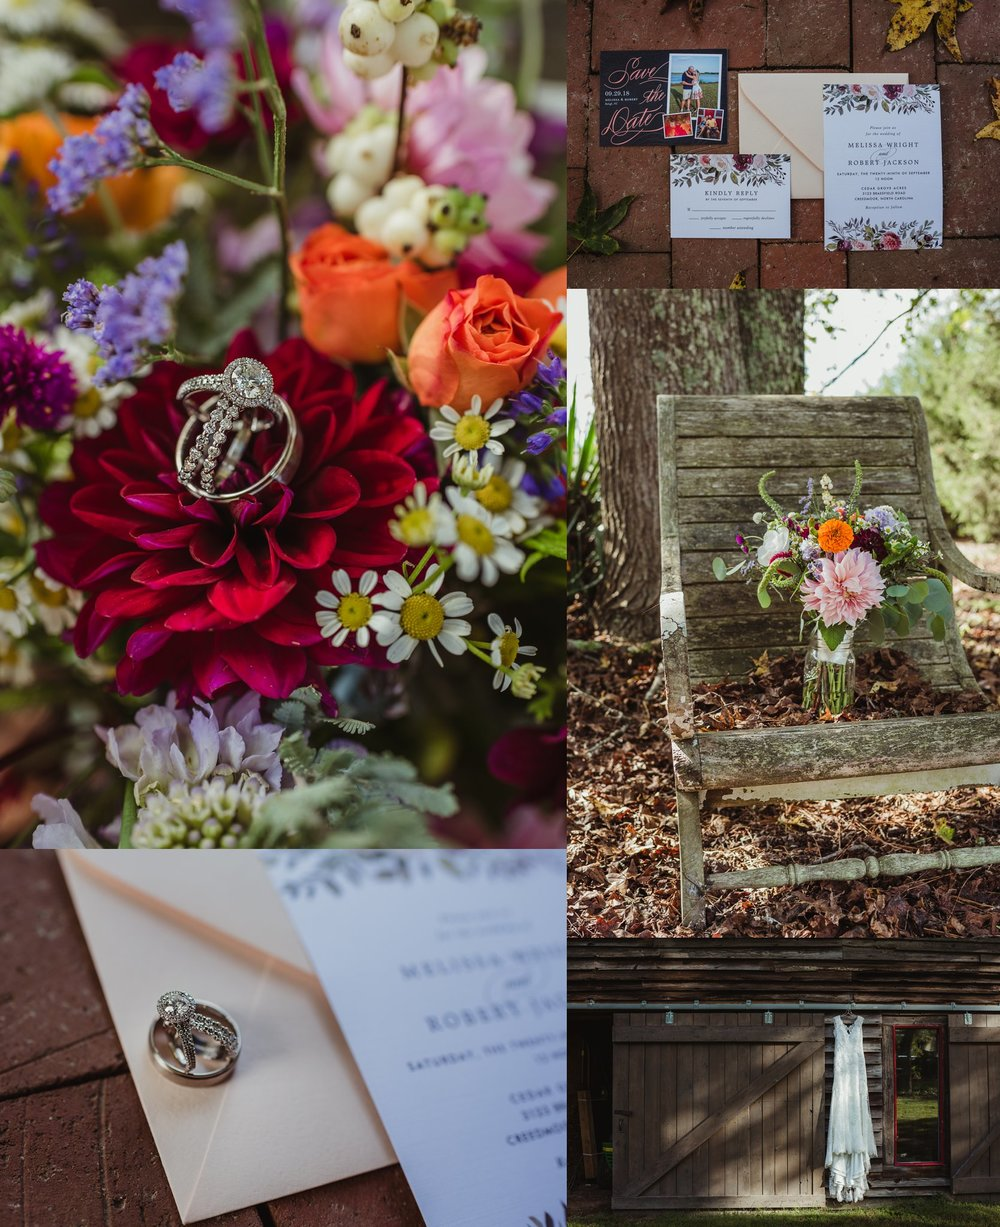 Details of the bridal bouquet, their rings, and a wedding dress, taken by Rose Trail Images at Cedar Grove Acres near North Carolina.